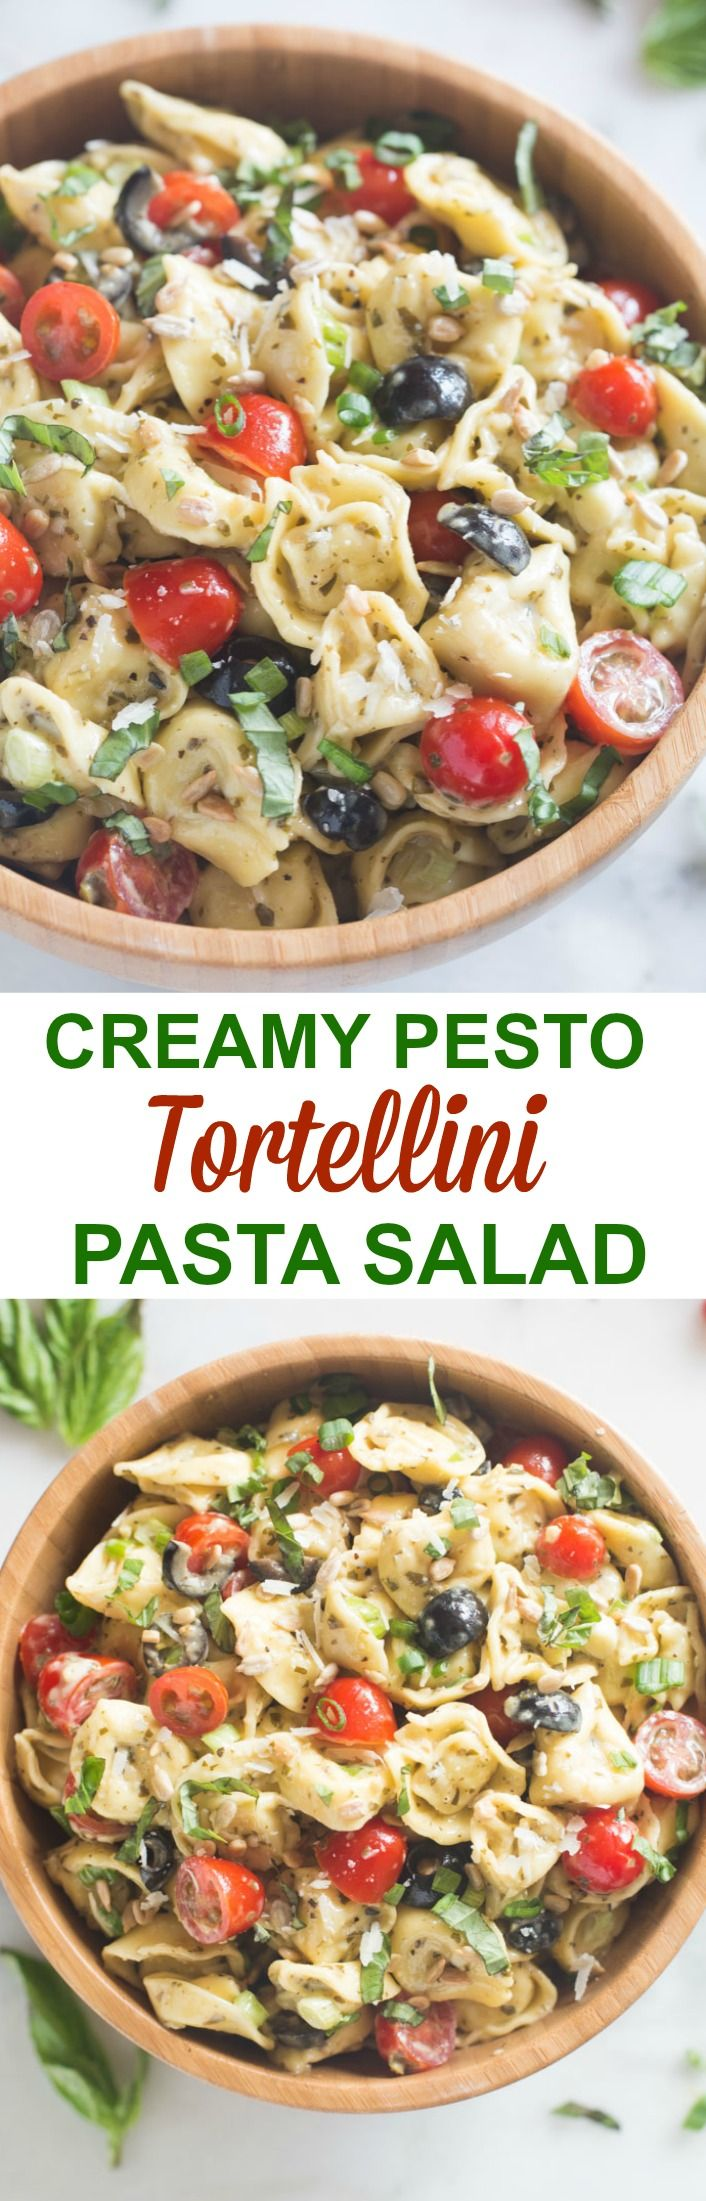 Creamy Pesto Tortellini Pasta Salad is completely delicious and comes together in just a few minutes. The creamy caesar pesto dressing shines paired with tender tortellini pasta. This is a family-favorite! | Tastes Better From Scratch